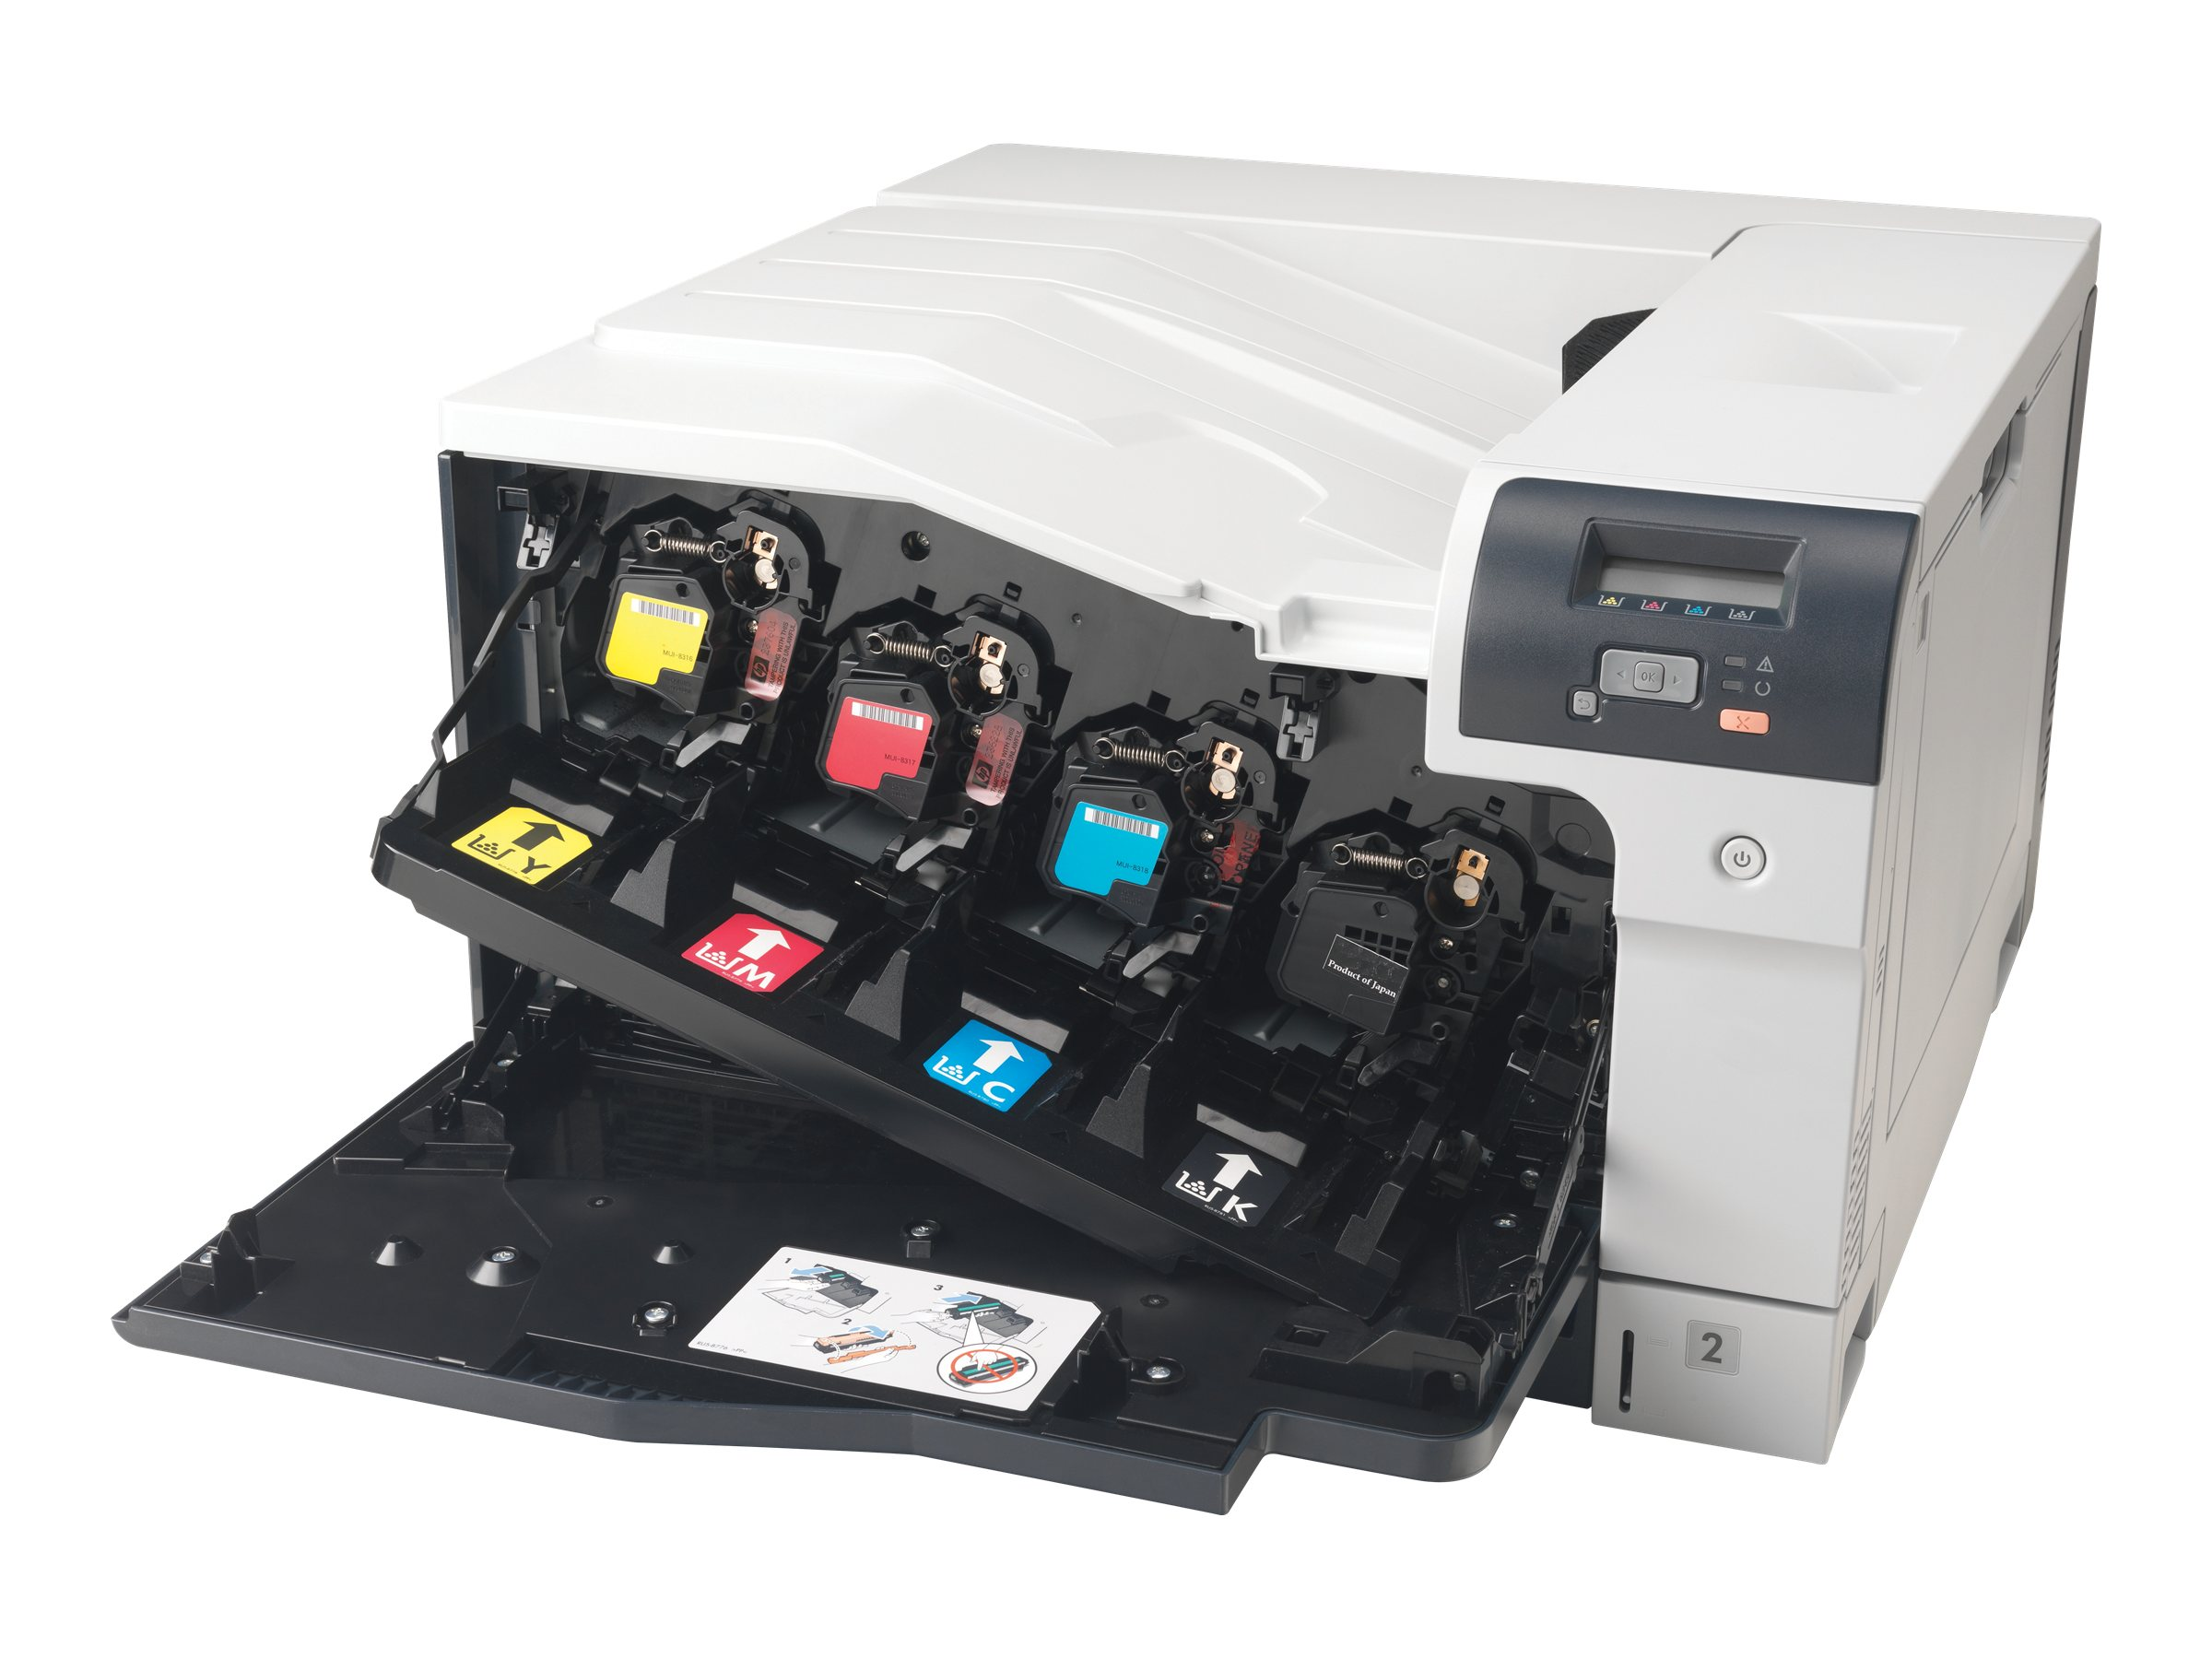 HP Color LaserJet Professional CP5225dn Printer, CE712A#BGJ